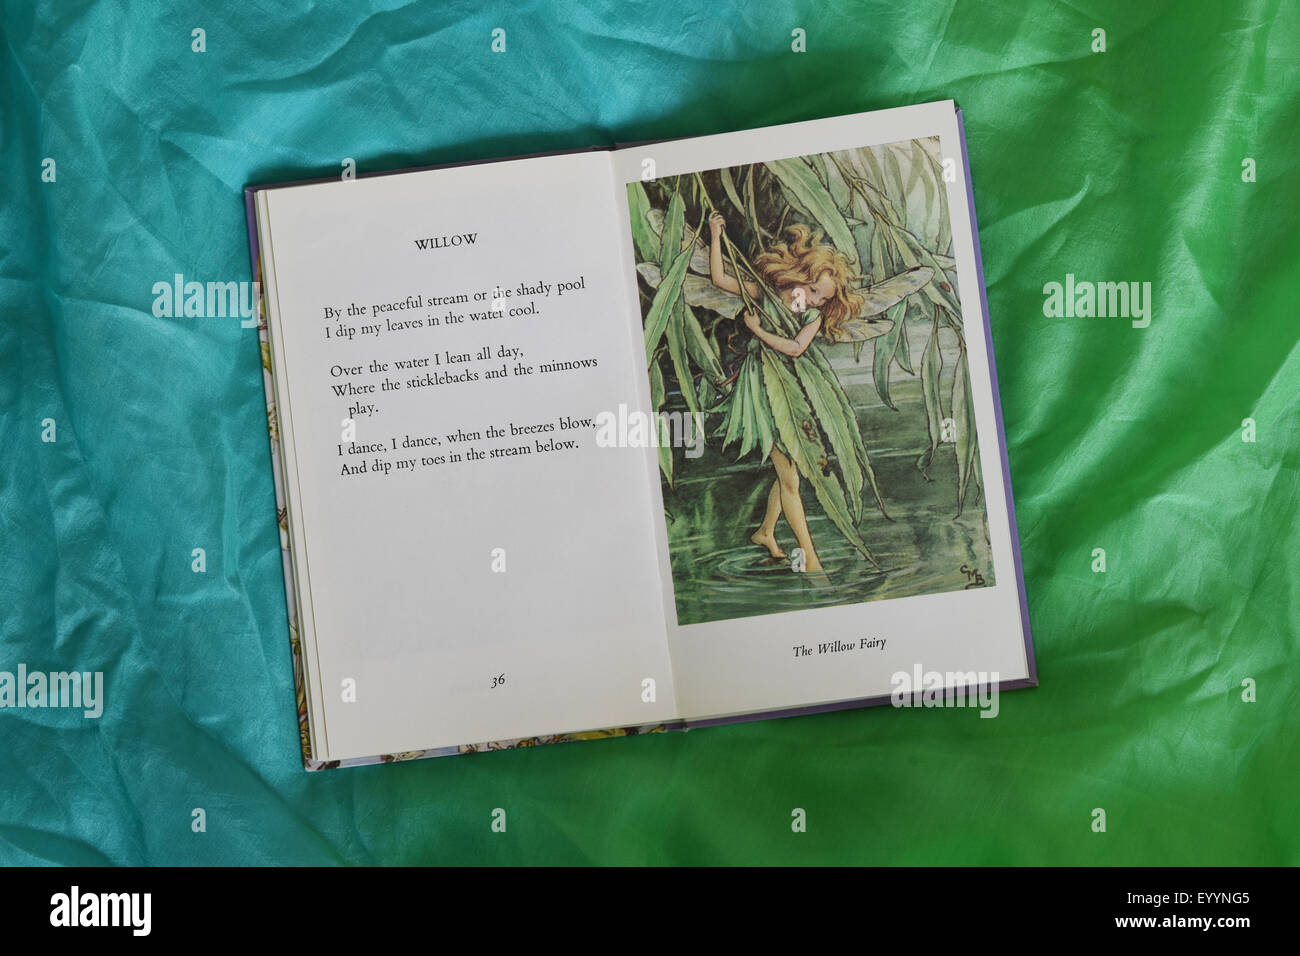 The Willow Fairy And Willow Poem From Flower Fairies Of The